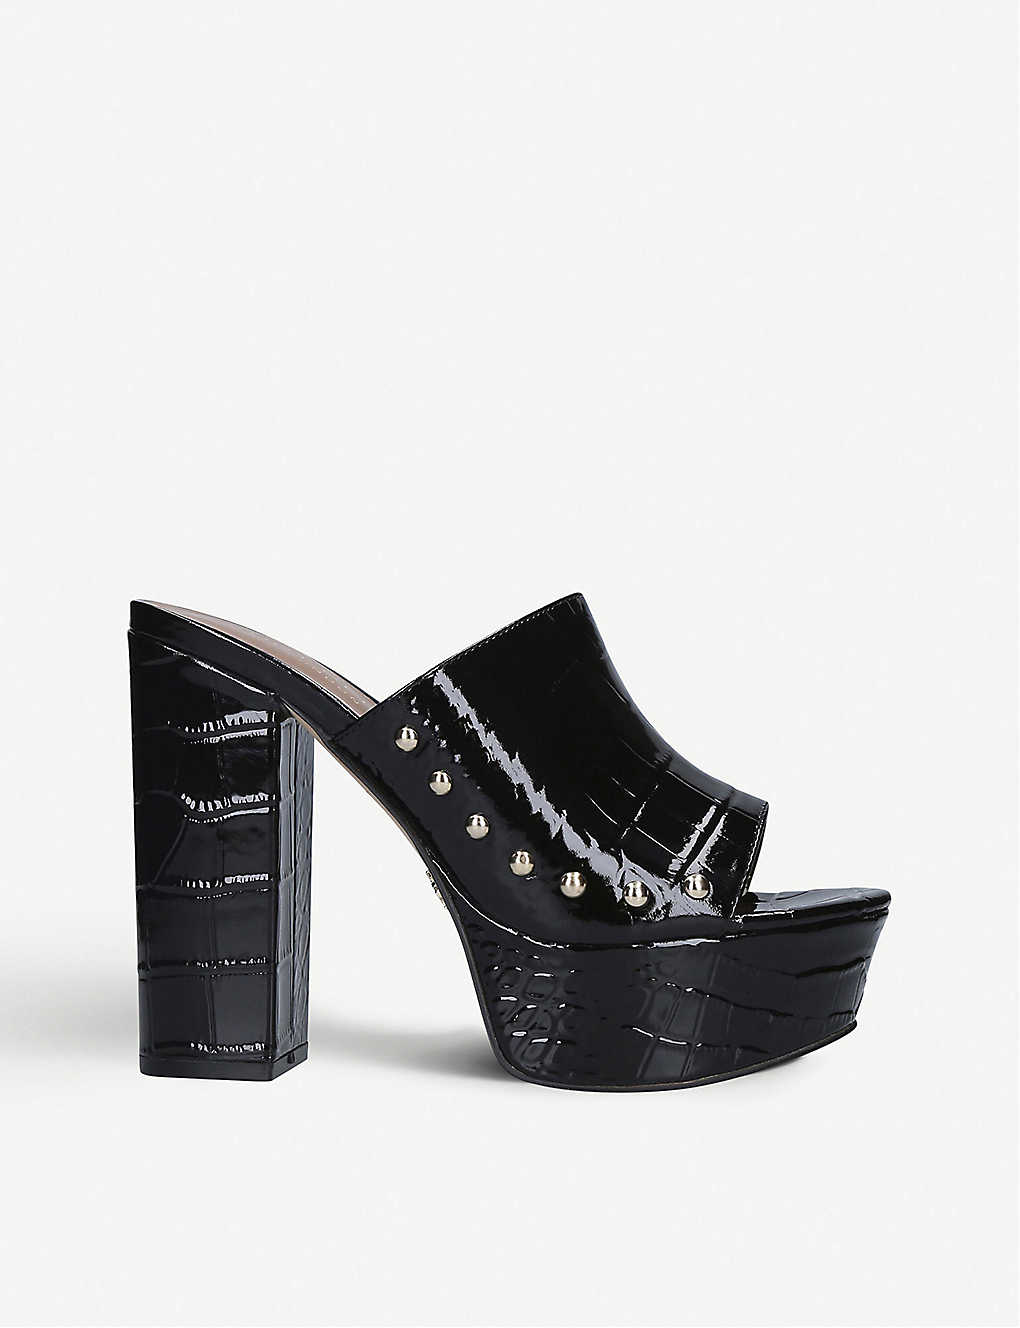 KURT GEIGER LONDON: Bree croc-embossed leather platform mules